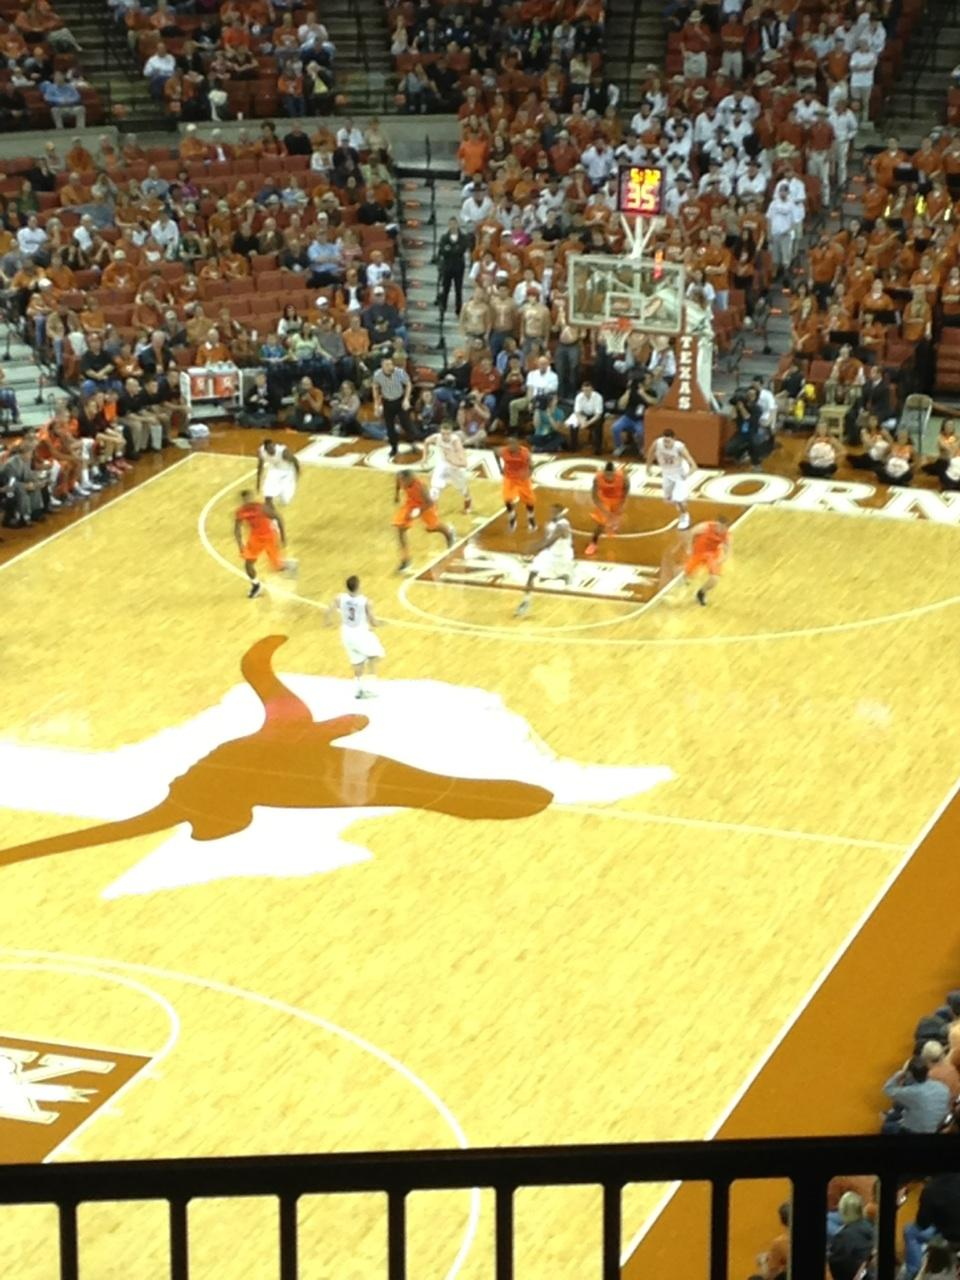 Frank Erwin Center Section 71 Row 6 Seat 2